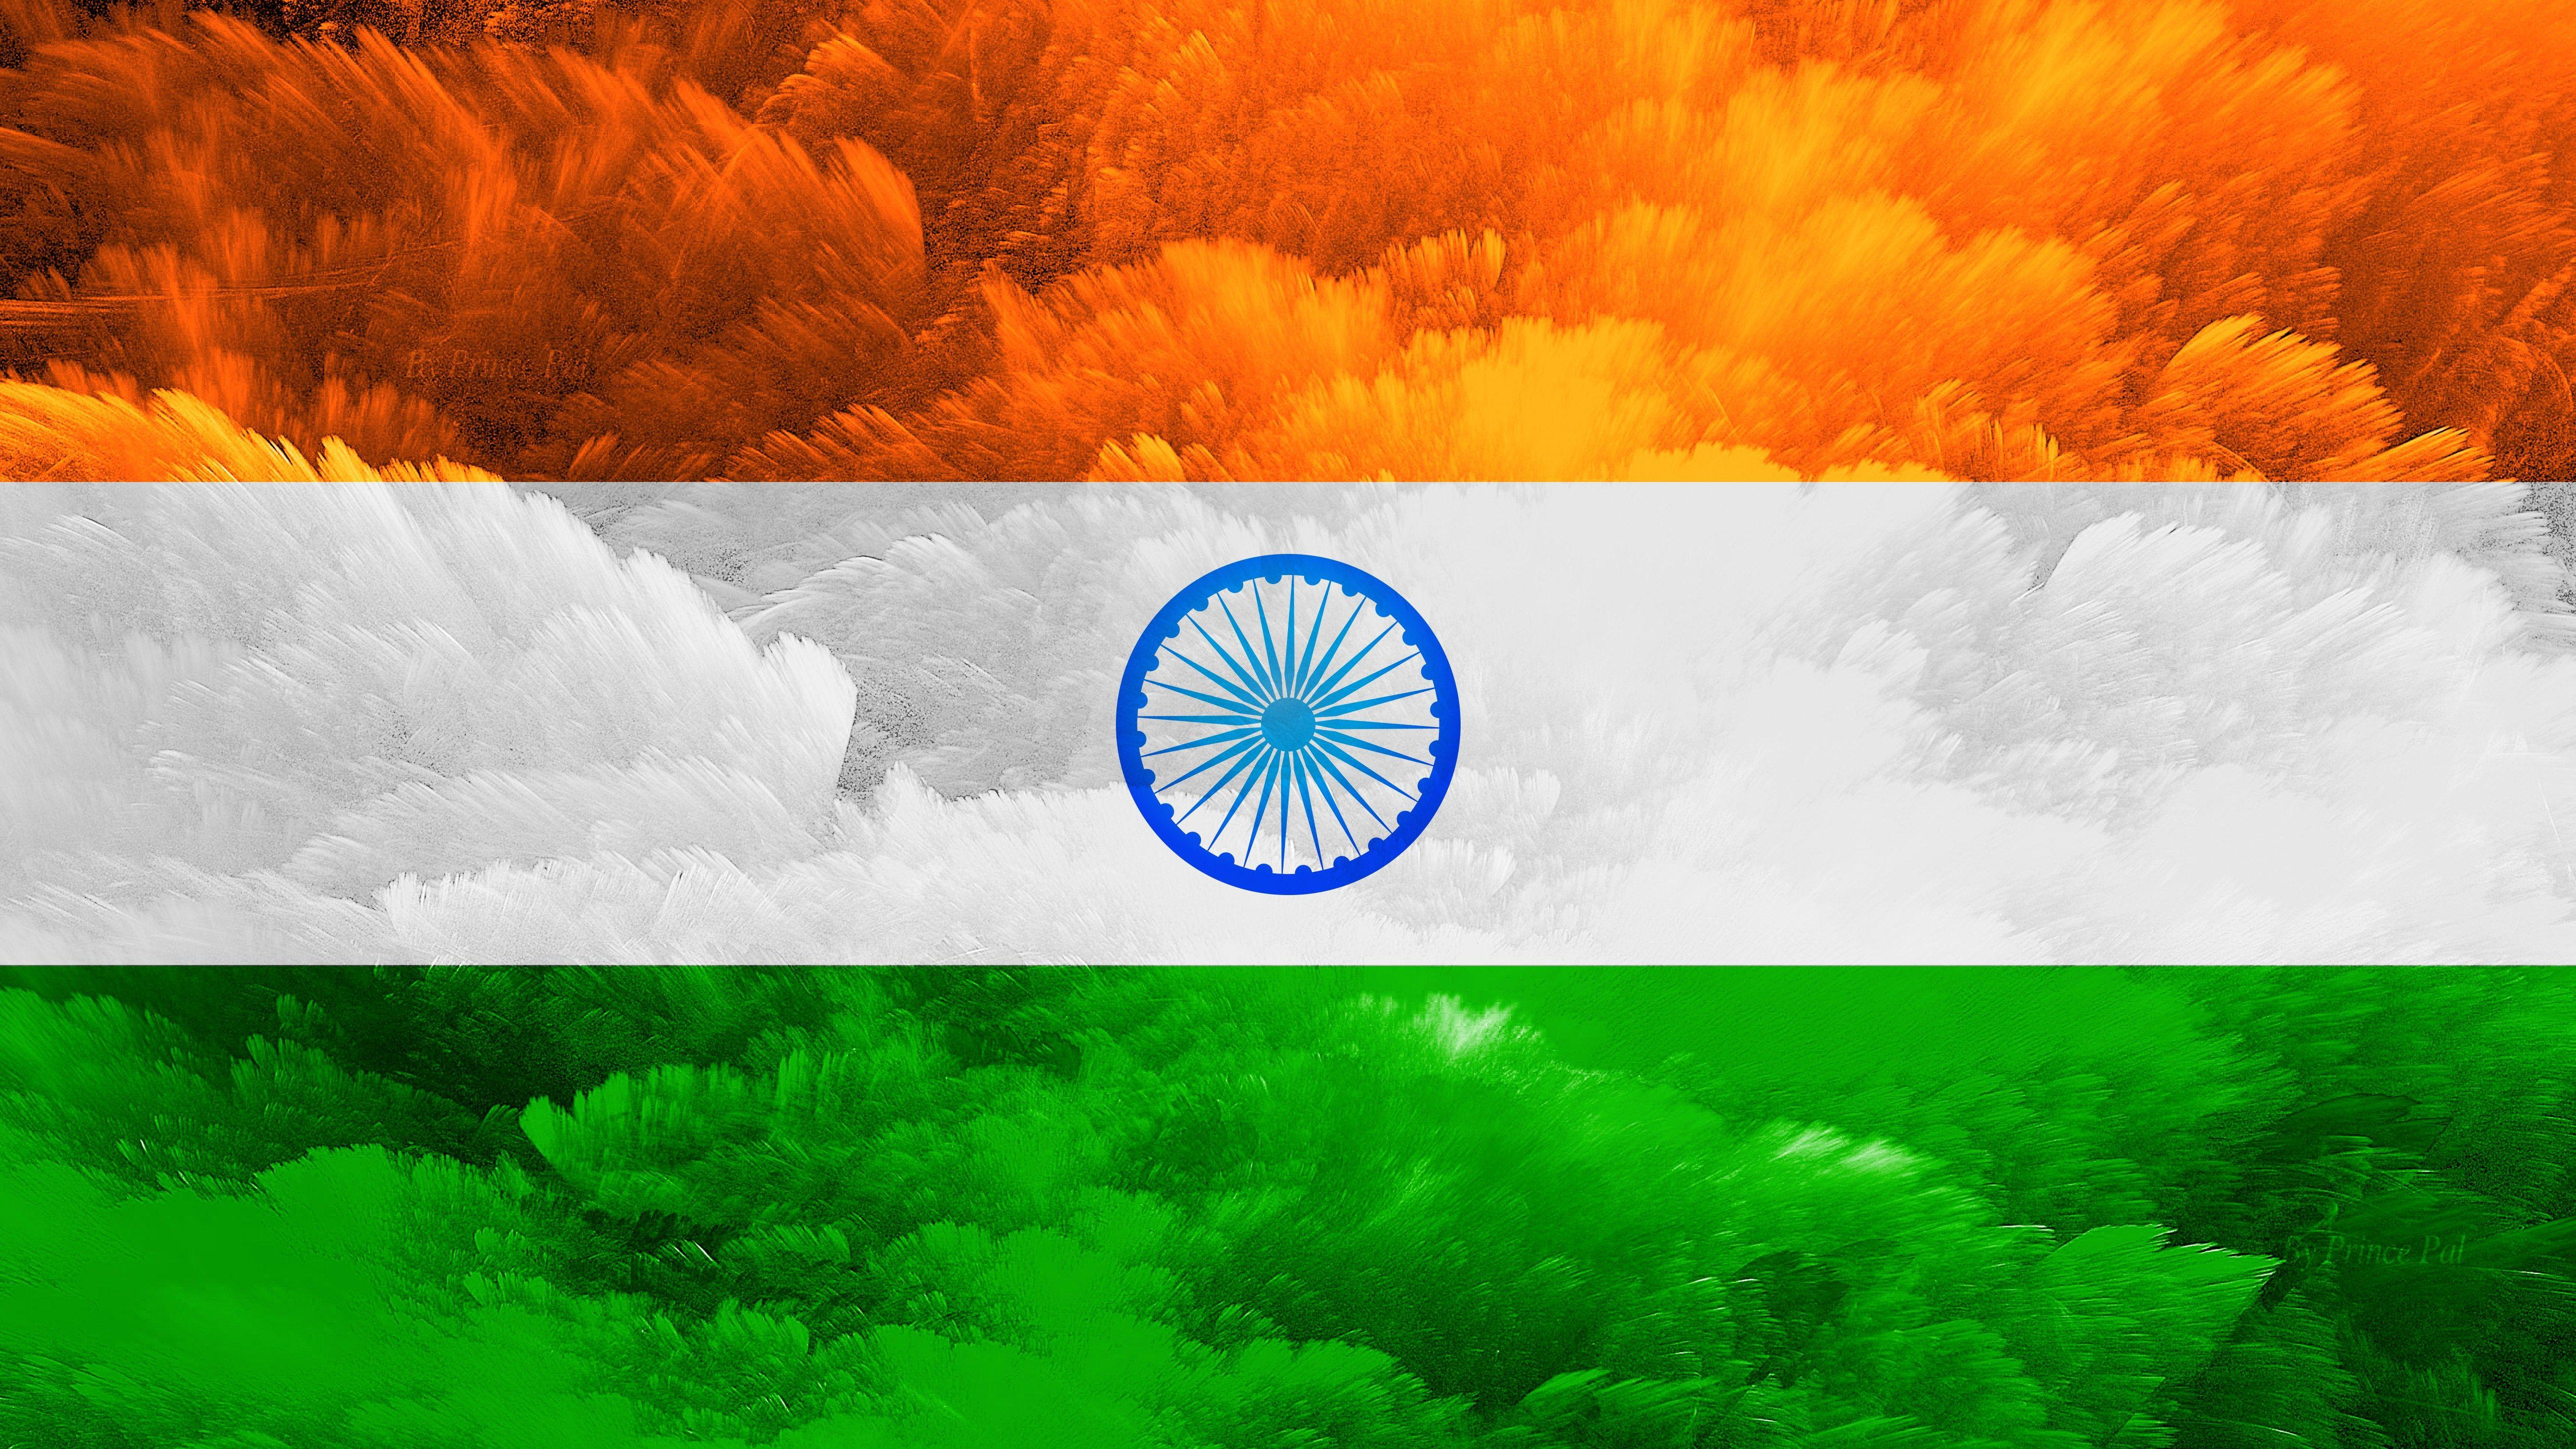 Indian Flag Images Hd720p: Indian Flag 4K Wallpapers